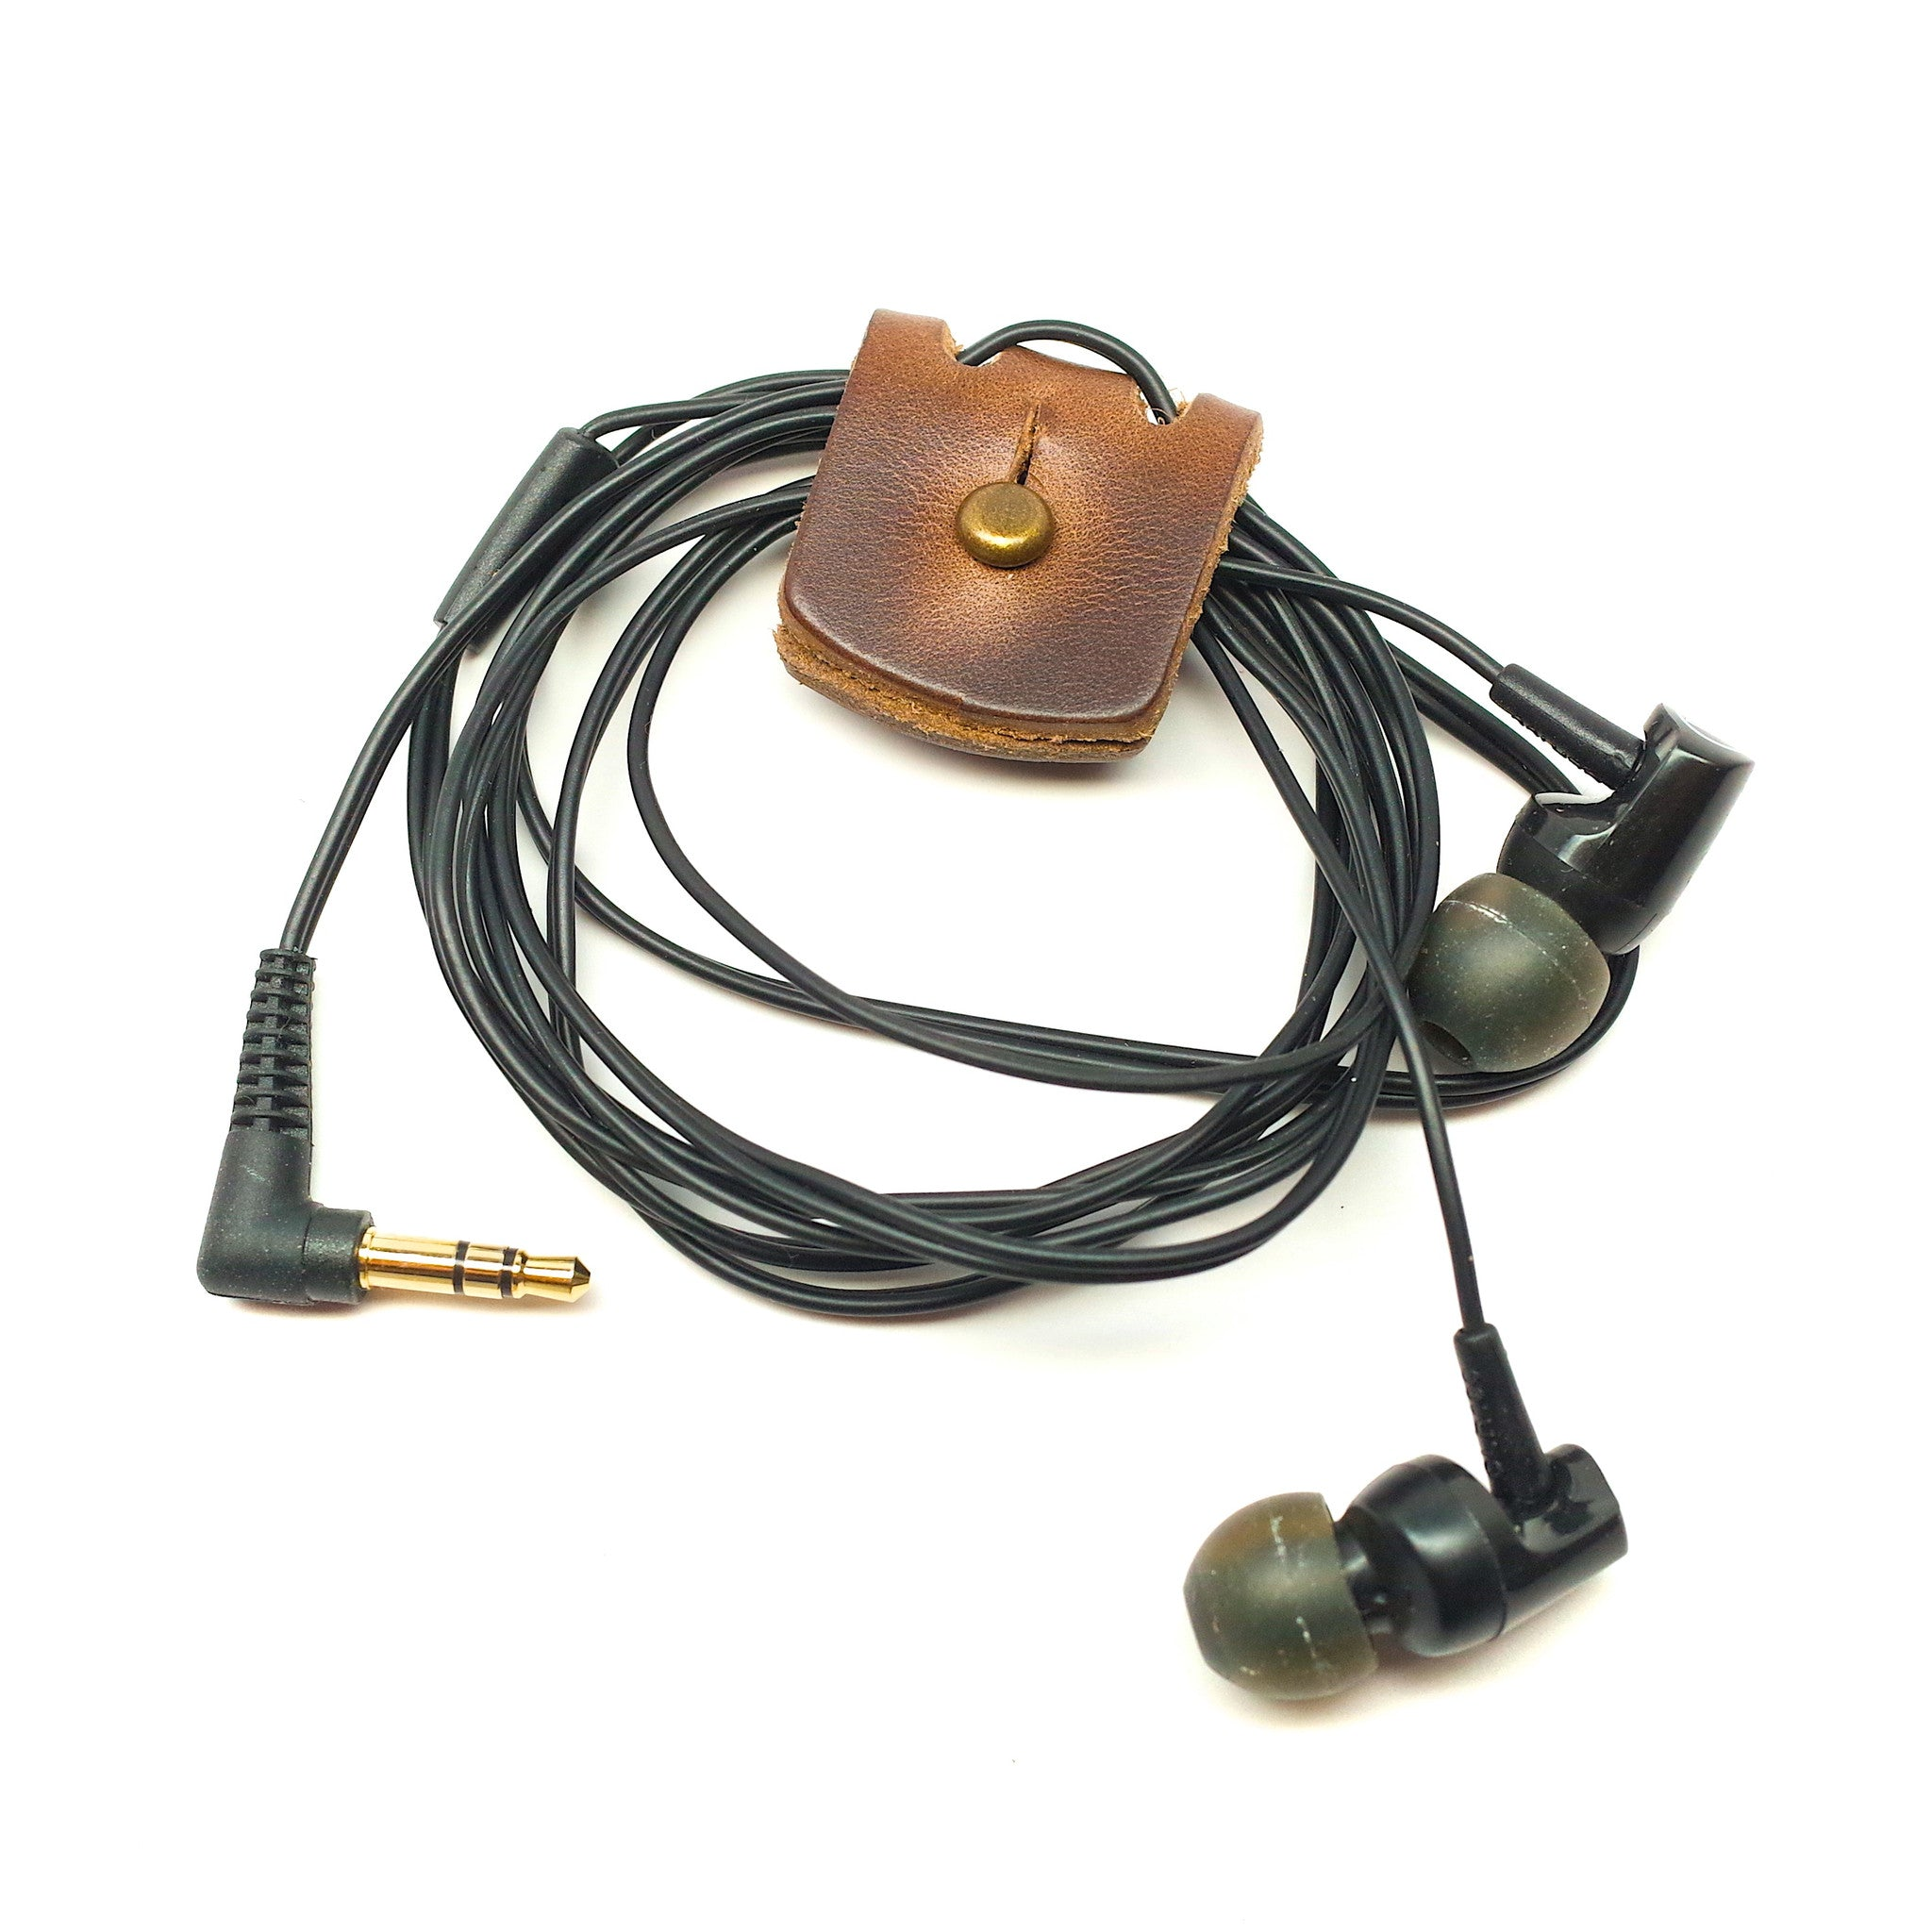 Horween Leather Earbud & Headphones Cord Wrap by E3 Supply Co